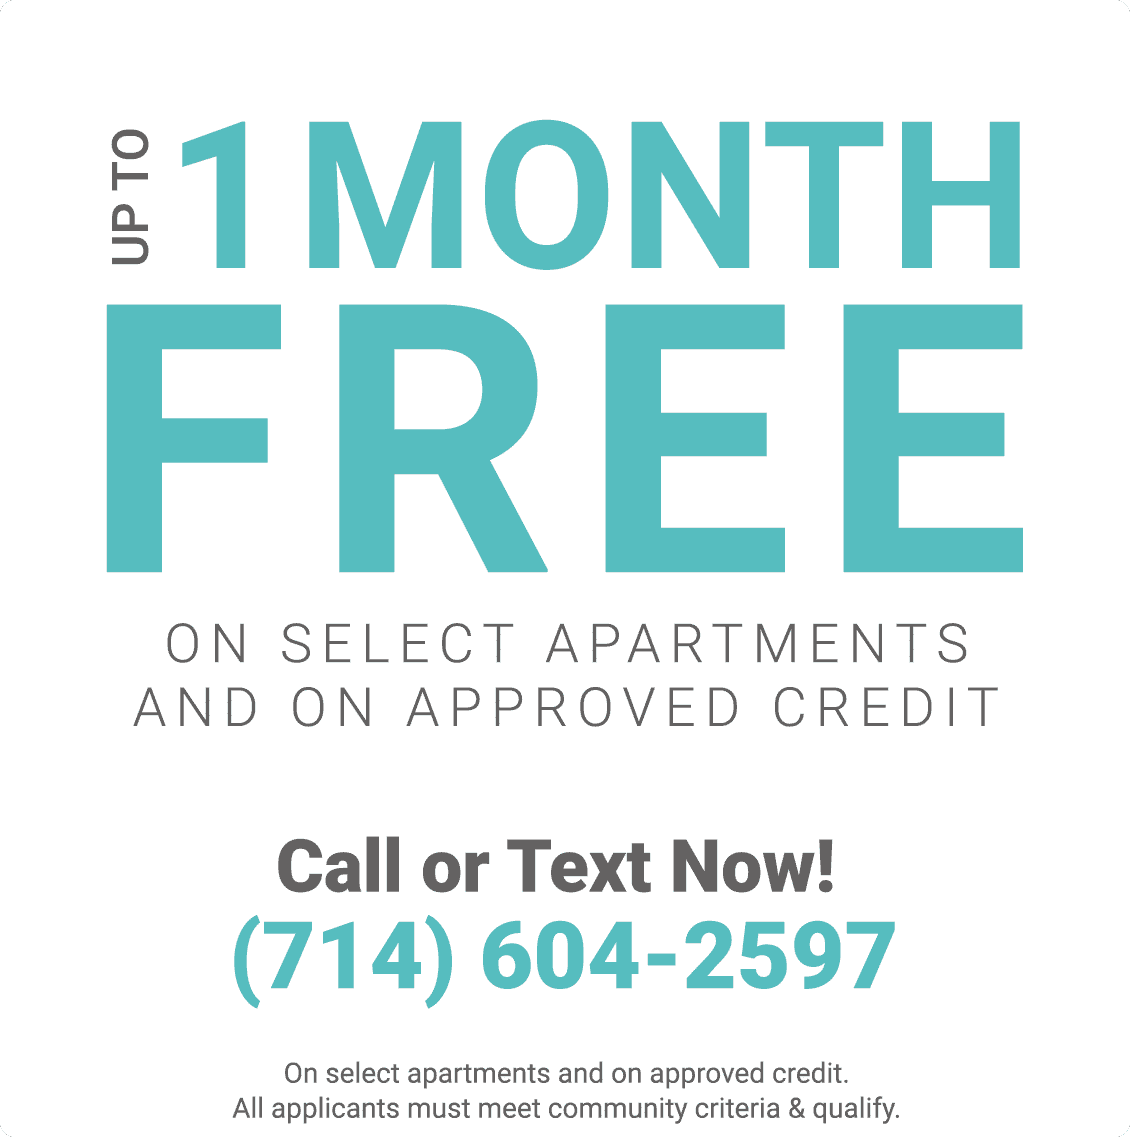 Up to One Month Free on Select Apartments and on Approved Credit